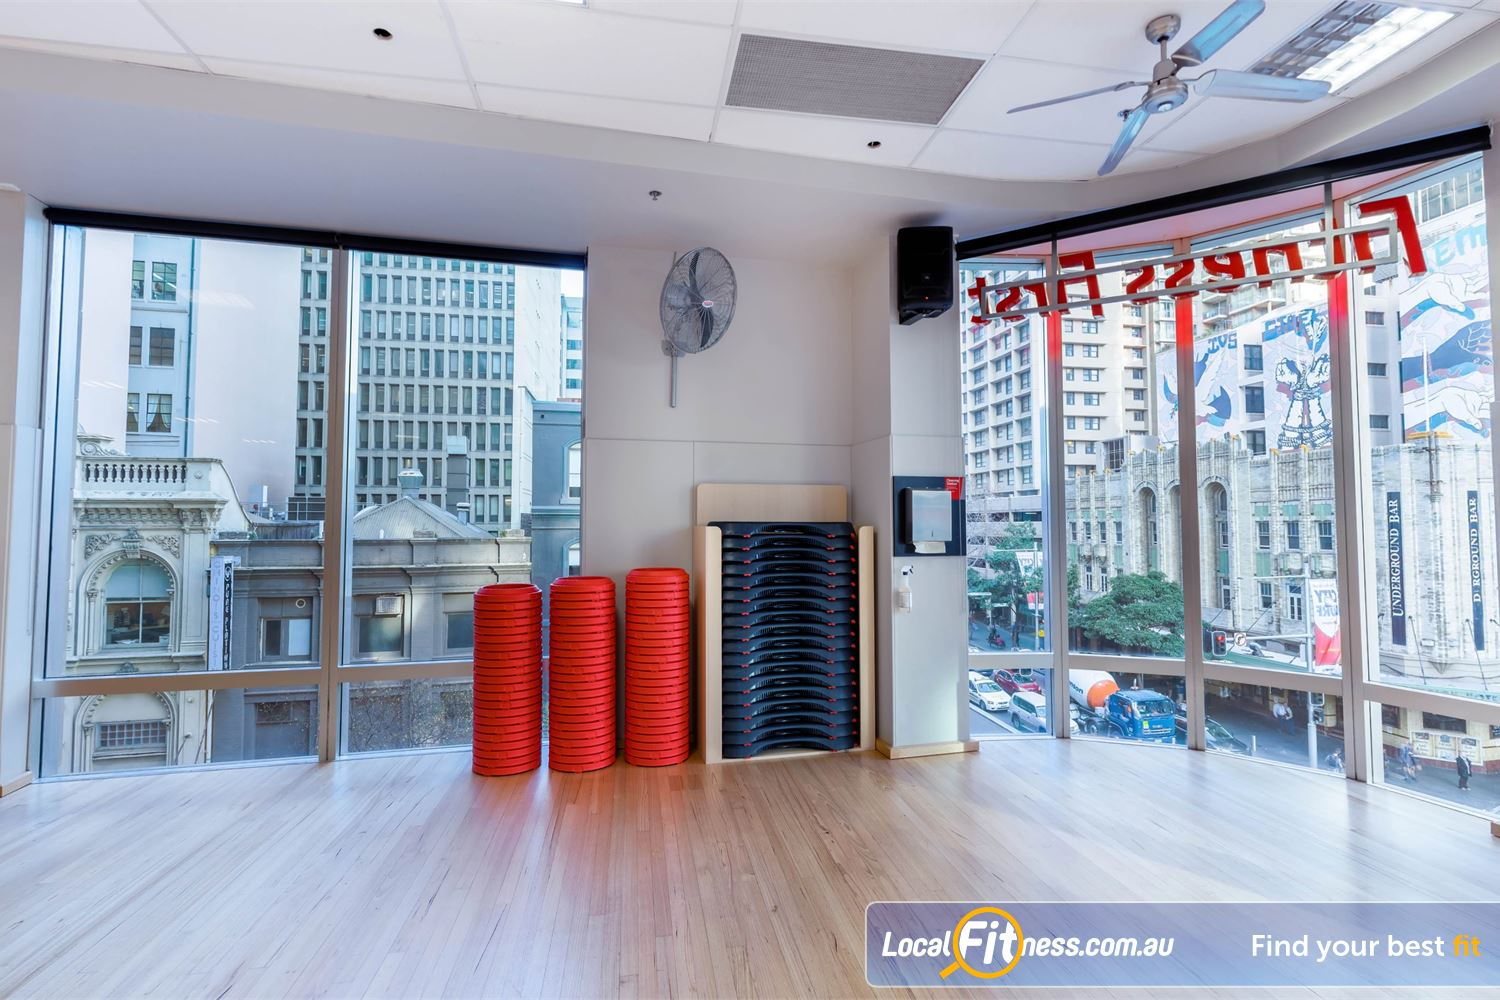 Fitness First Platinum Park St Sydney Over 39 classes per week inc. Sydney Pilates, Les Mills, and more